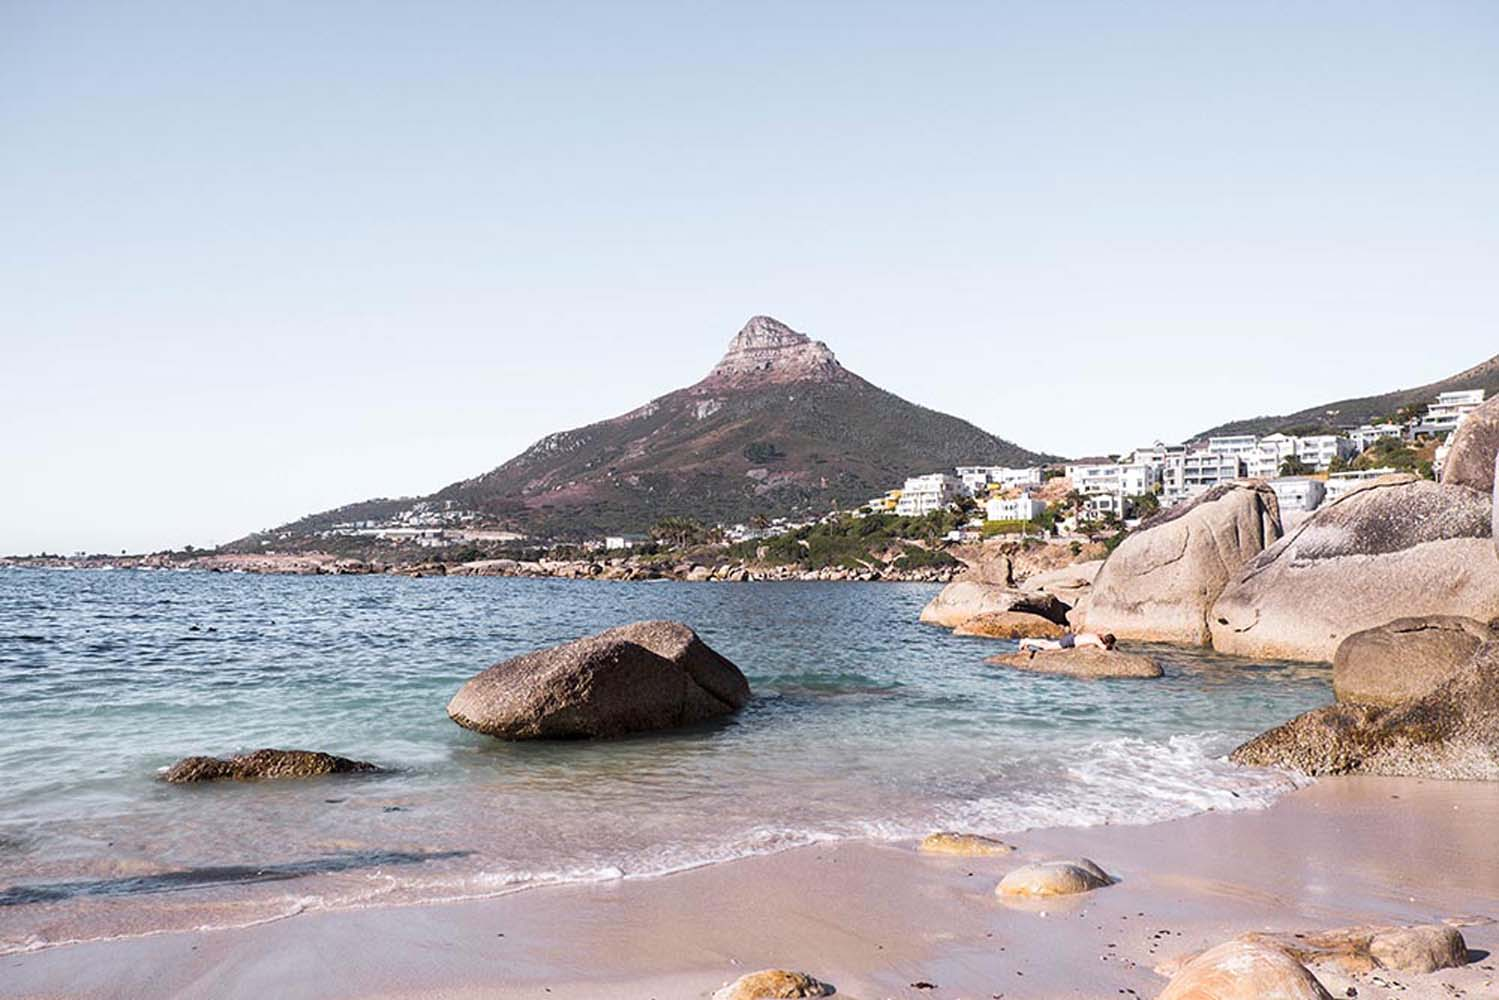 A unique Cape Town itinerary for 1, 3 or 5 days. Learn about the best Cape Town tours, sights you shouldn't miss & true insider tips and advice on how to get around and plan your Cape Town holidays.